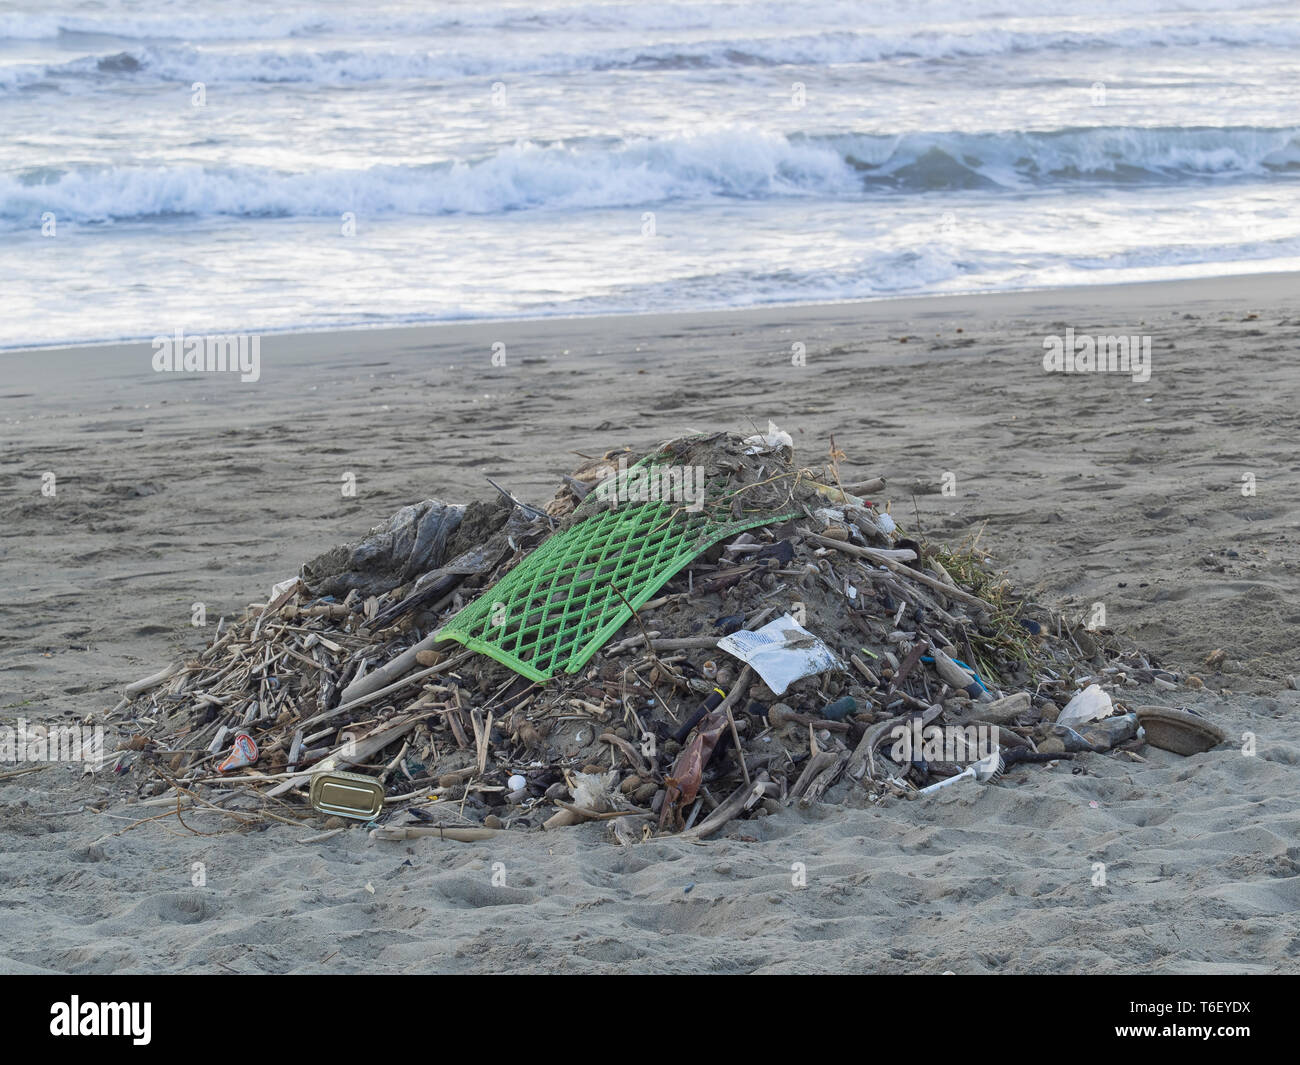 ocean pollution: waste collected on a sandy  beach: lots of objects mostly made of plastic mixed with natural residues - Stock Image